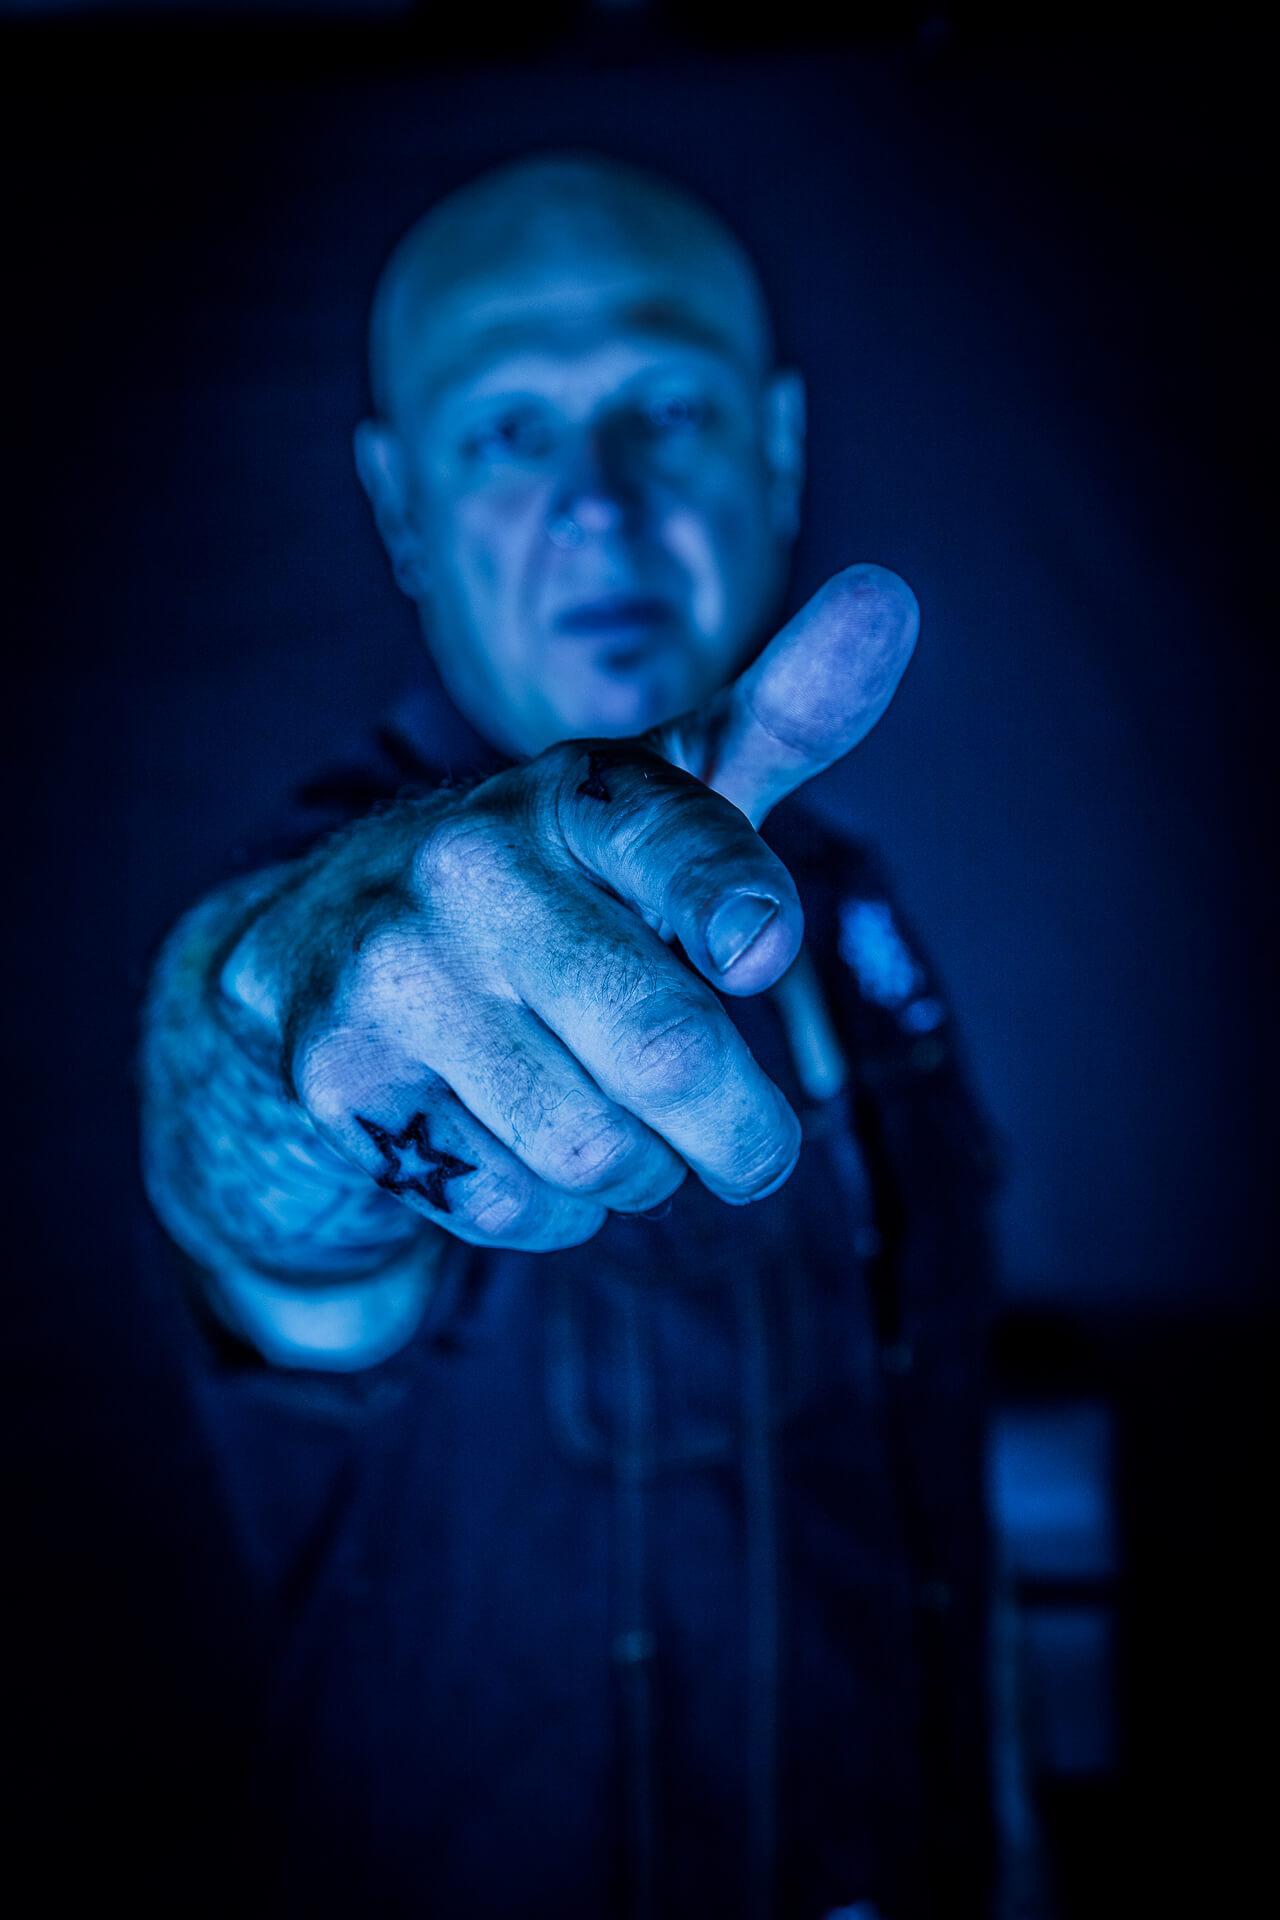 A blue tinted shot of drummer & producer Pete Newdeck, pointing at the camera. Only his outstretched fingers are in focus, the rest of him is slightly out of focus.